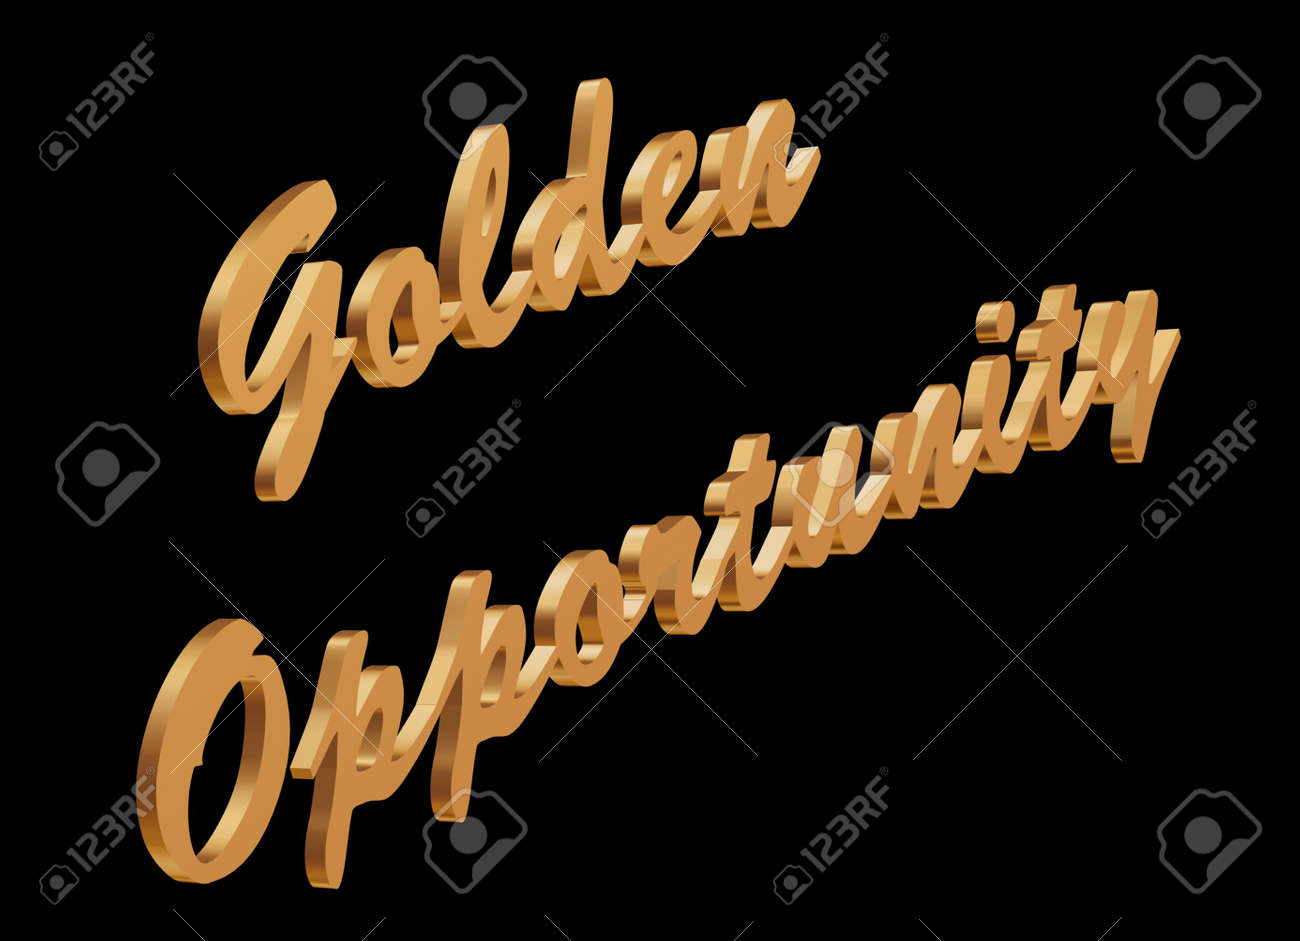 Golden opportunity what everyone is looking for